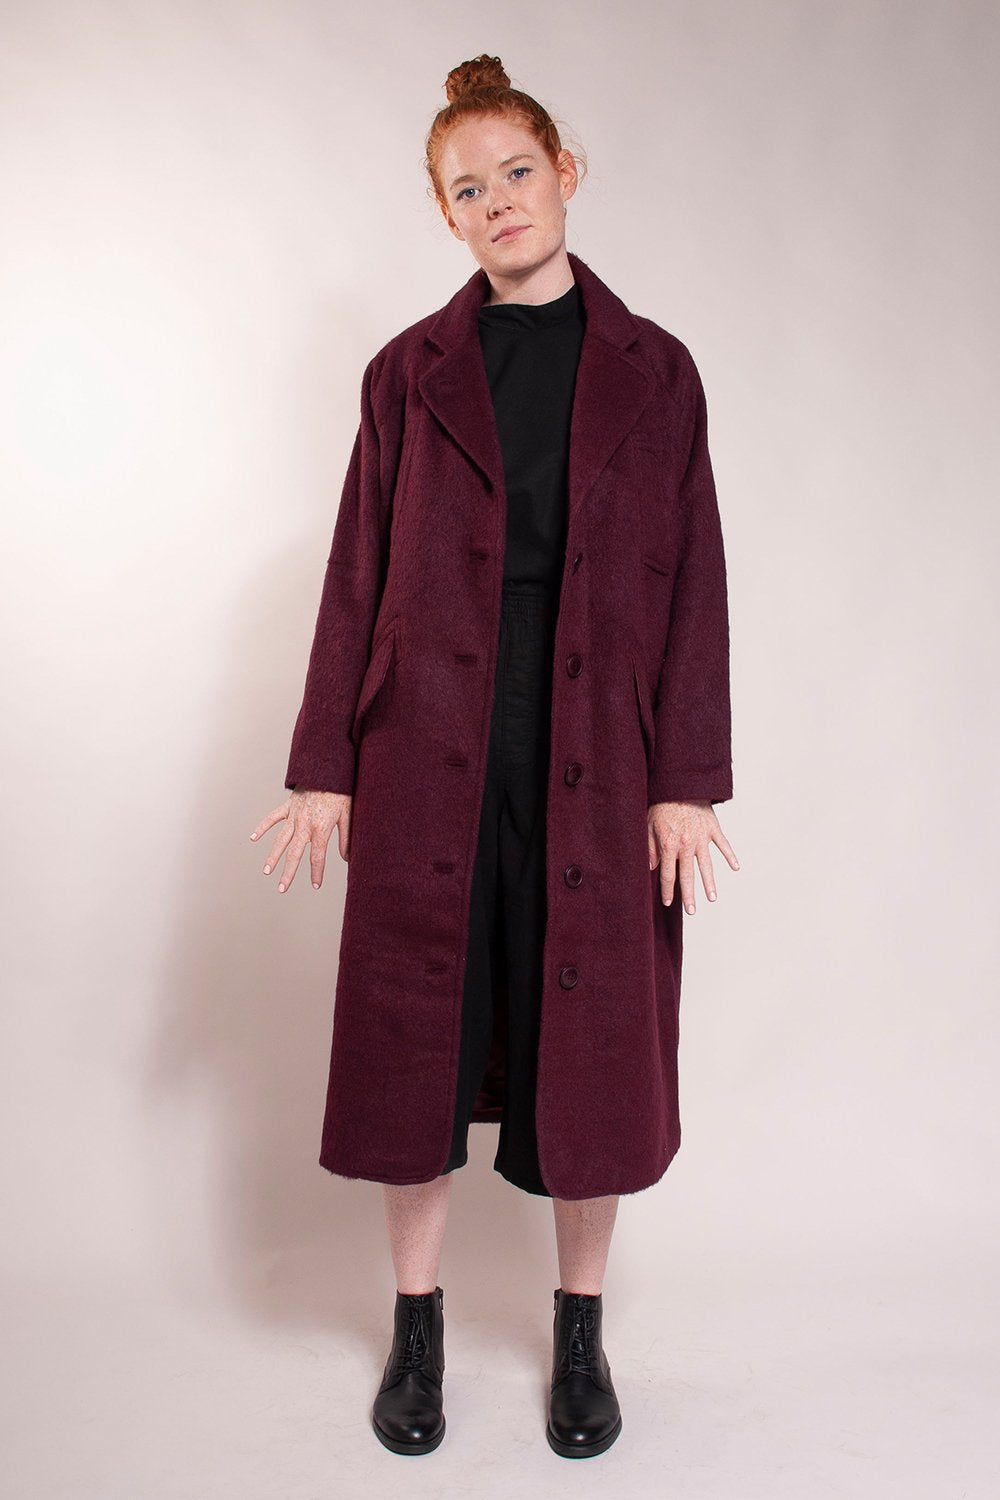 Long overcoat, loose fit, welt chest handwarmer pockets and hidden button hip pockets.30% Wool/ 70% Polyester. Fully lined.  Great mid-weight coat!